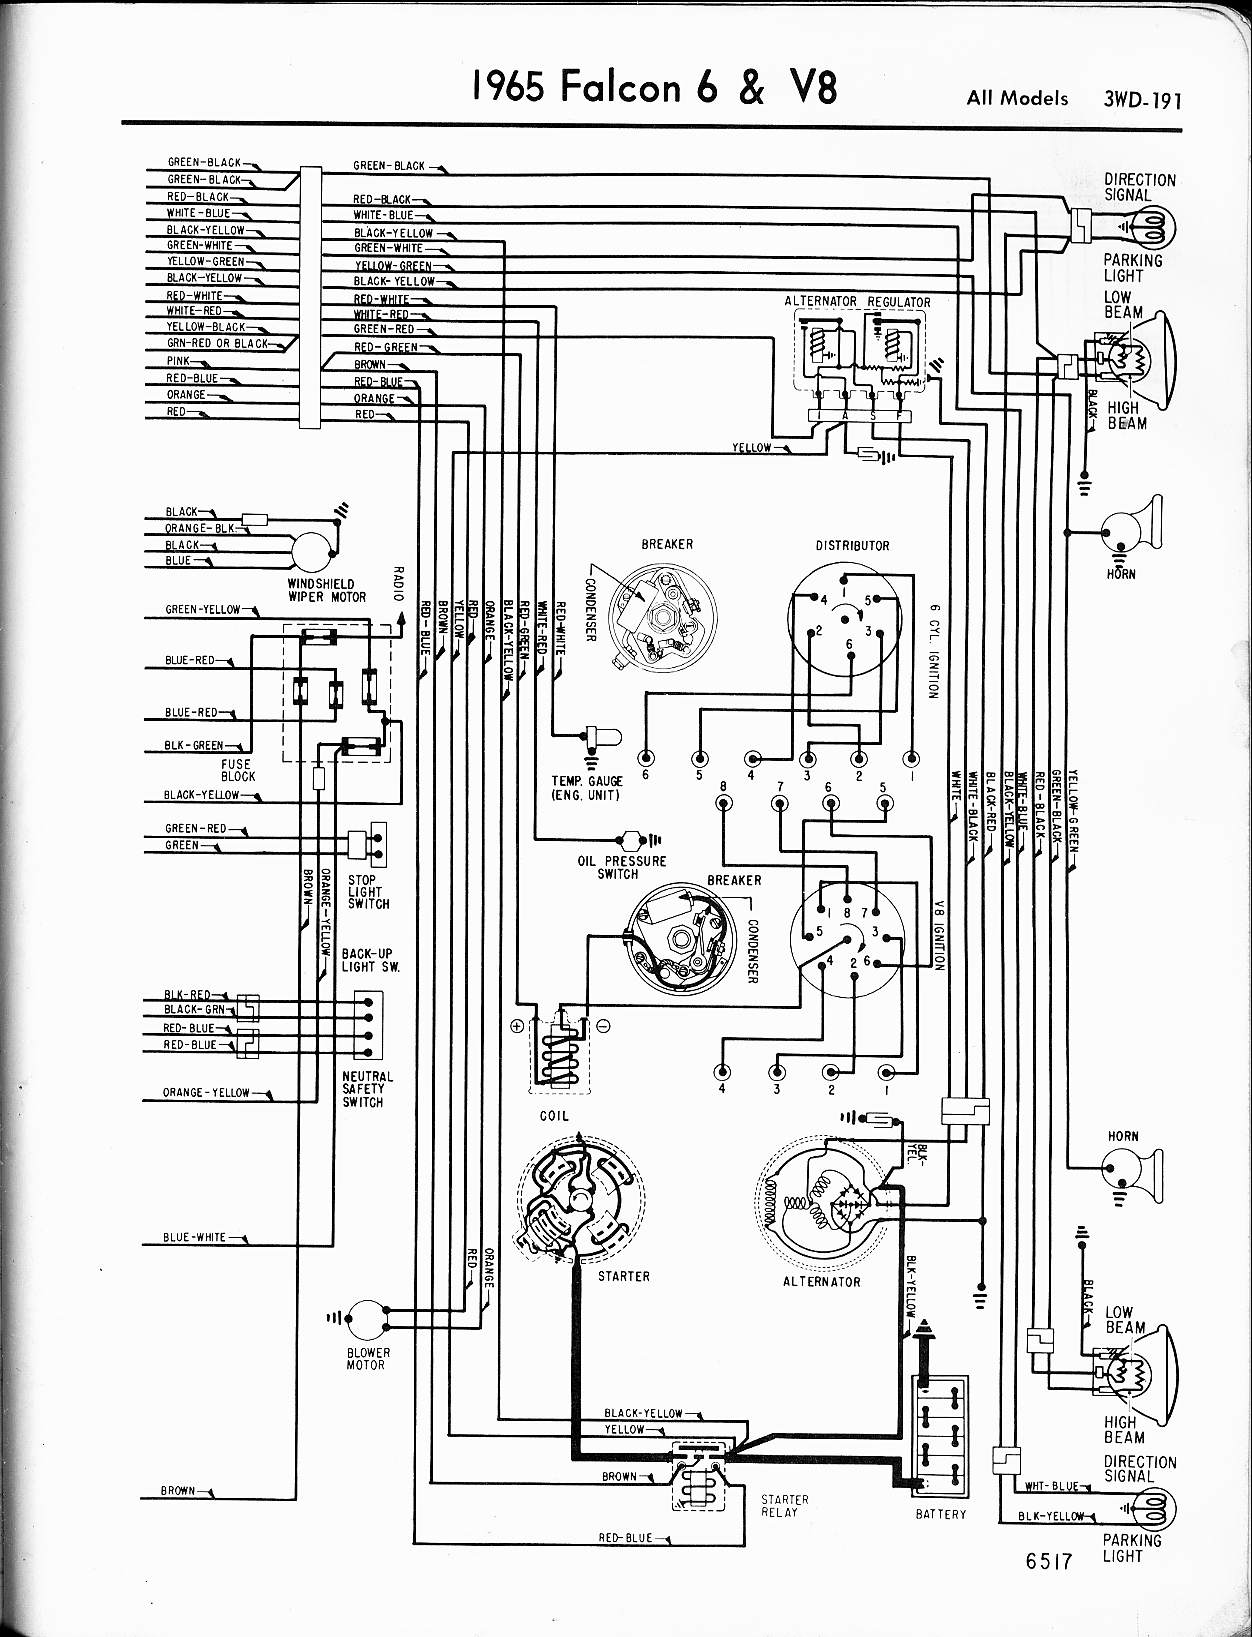 MWire5765 191 engine wire diagram for 65 falcon 65 falcon hot rod \u2022 wiring 1965 ford alternator wiring diagram at eliteediting.co